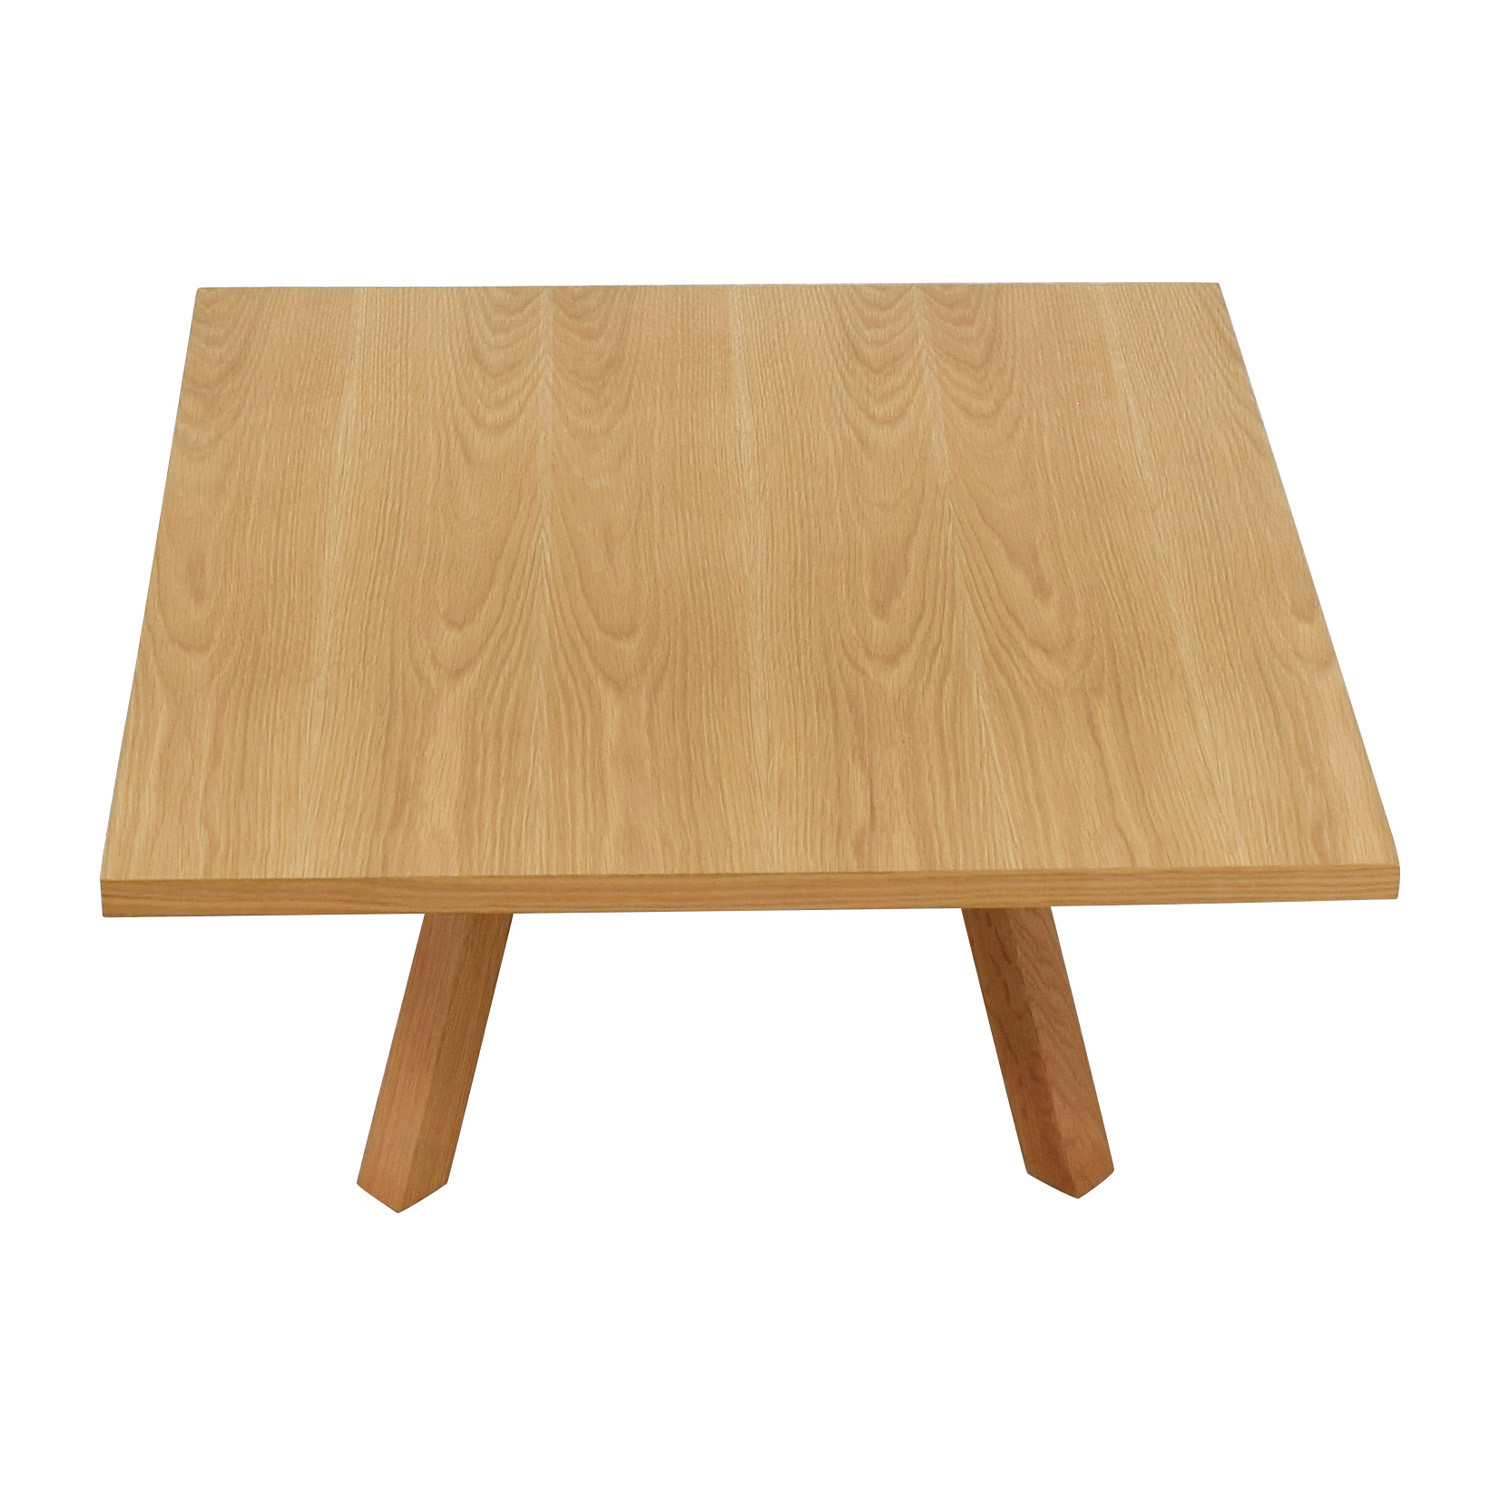 buy InMod InMod Sean Dix Forte Square Dining Table online